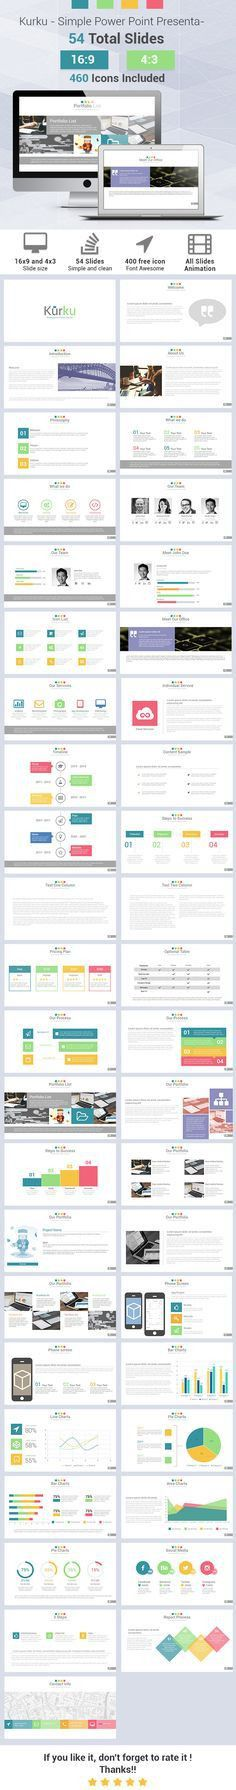 Executive Powerpoint Template by Slidedizer on Creative Market ...